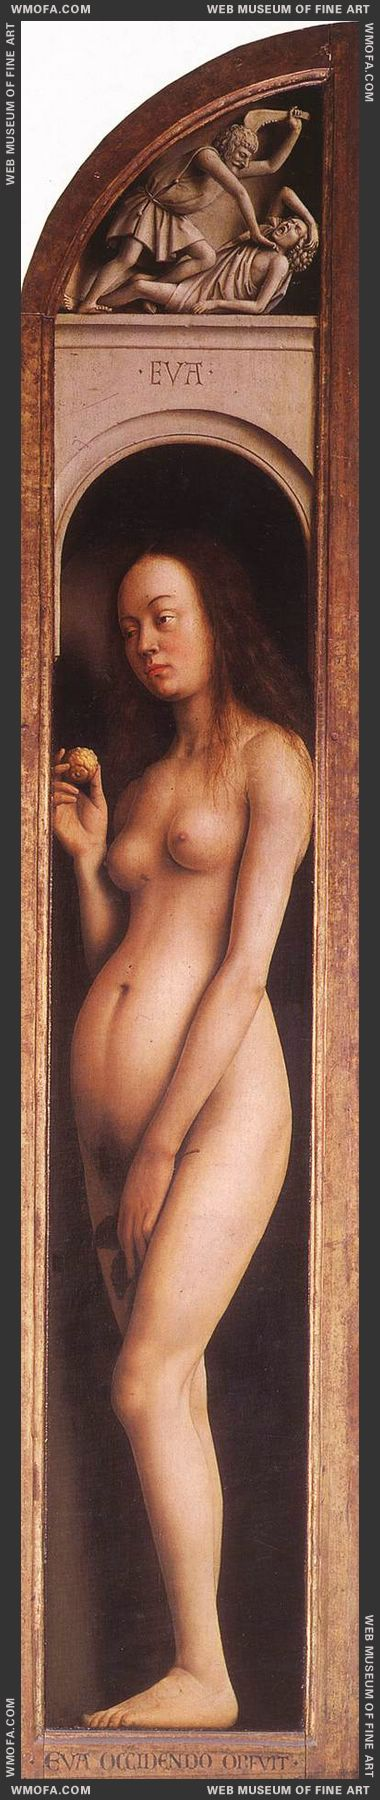 The Ghent Altarpiece - Eve The Killing of Abell 1425-1429 by Eyck, Jan van